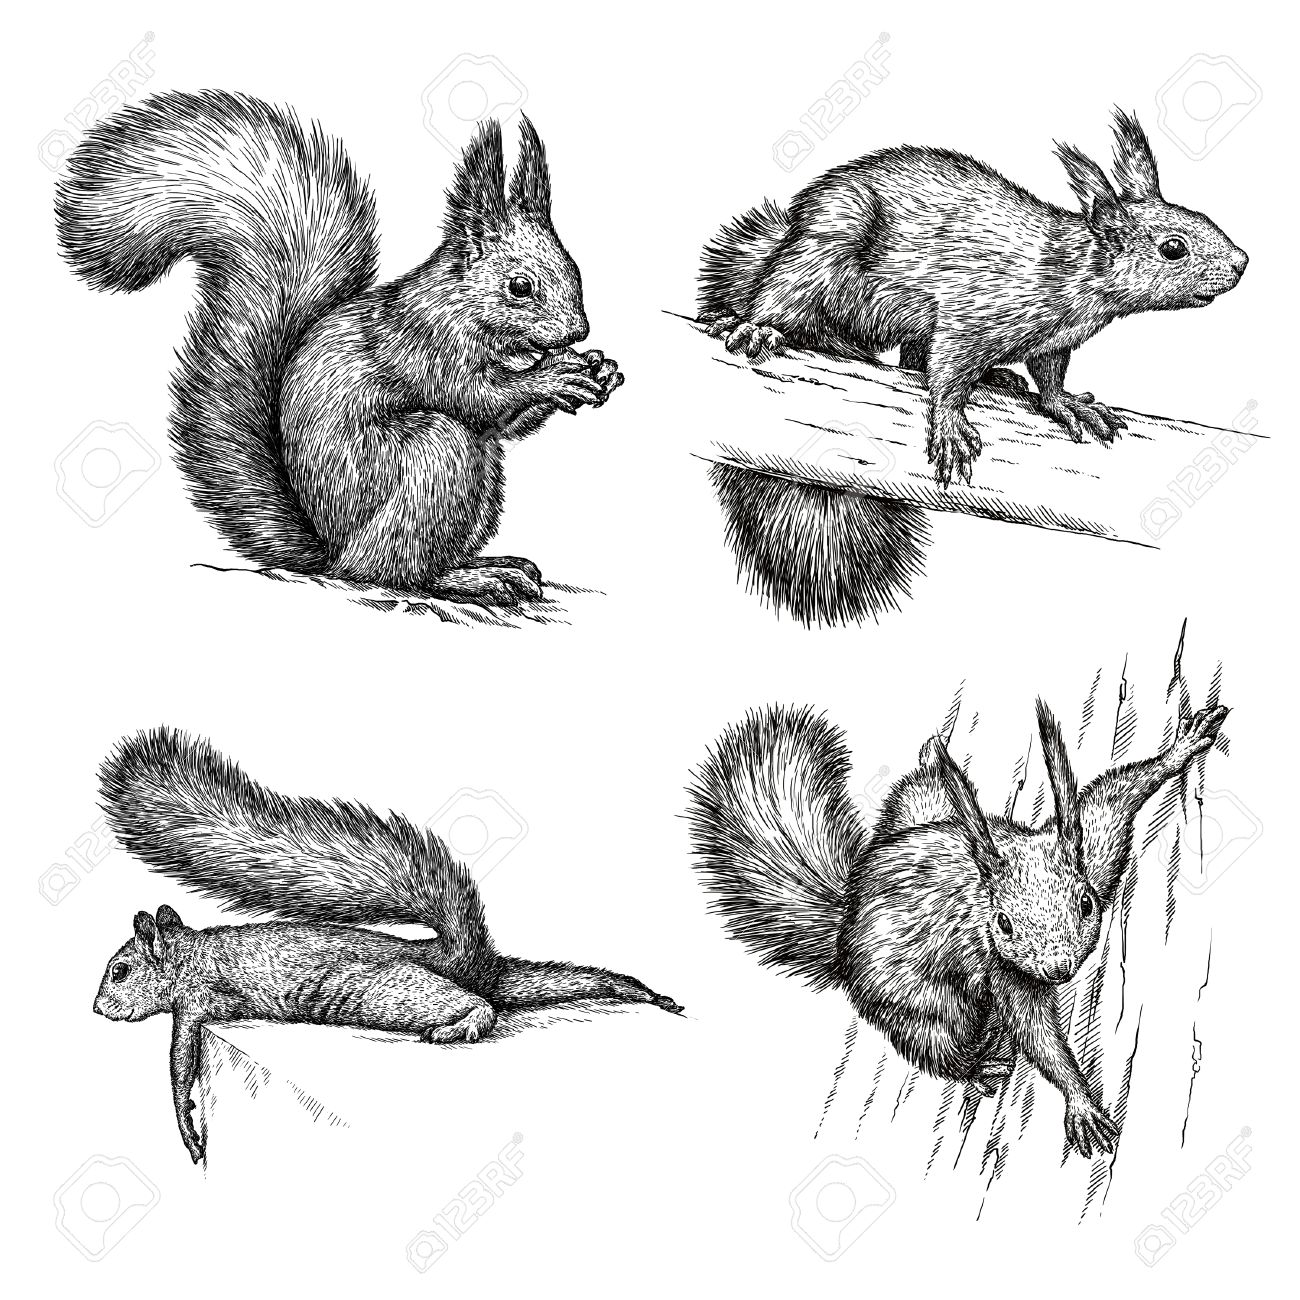 engrave isolated squirrel illustration sketch linear art stock